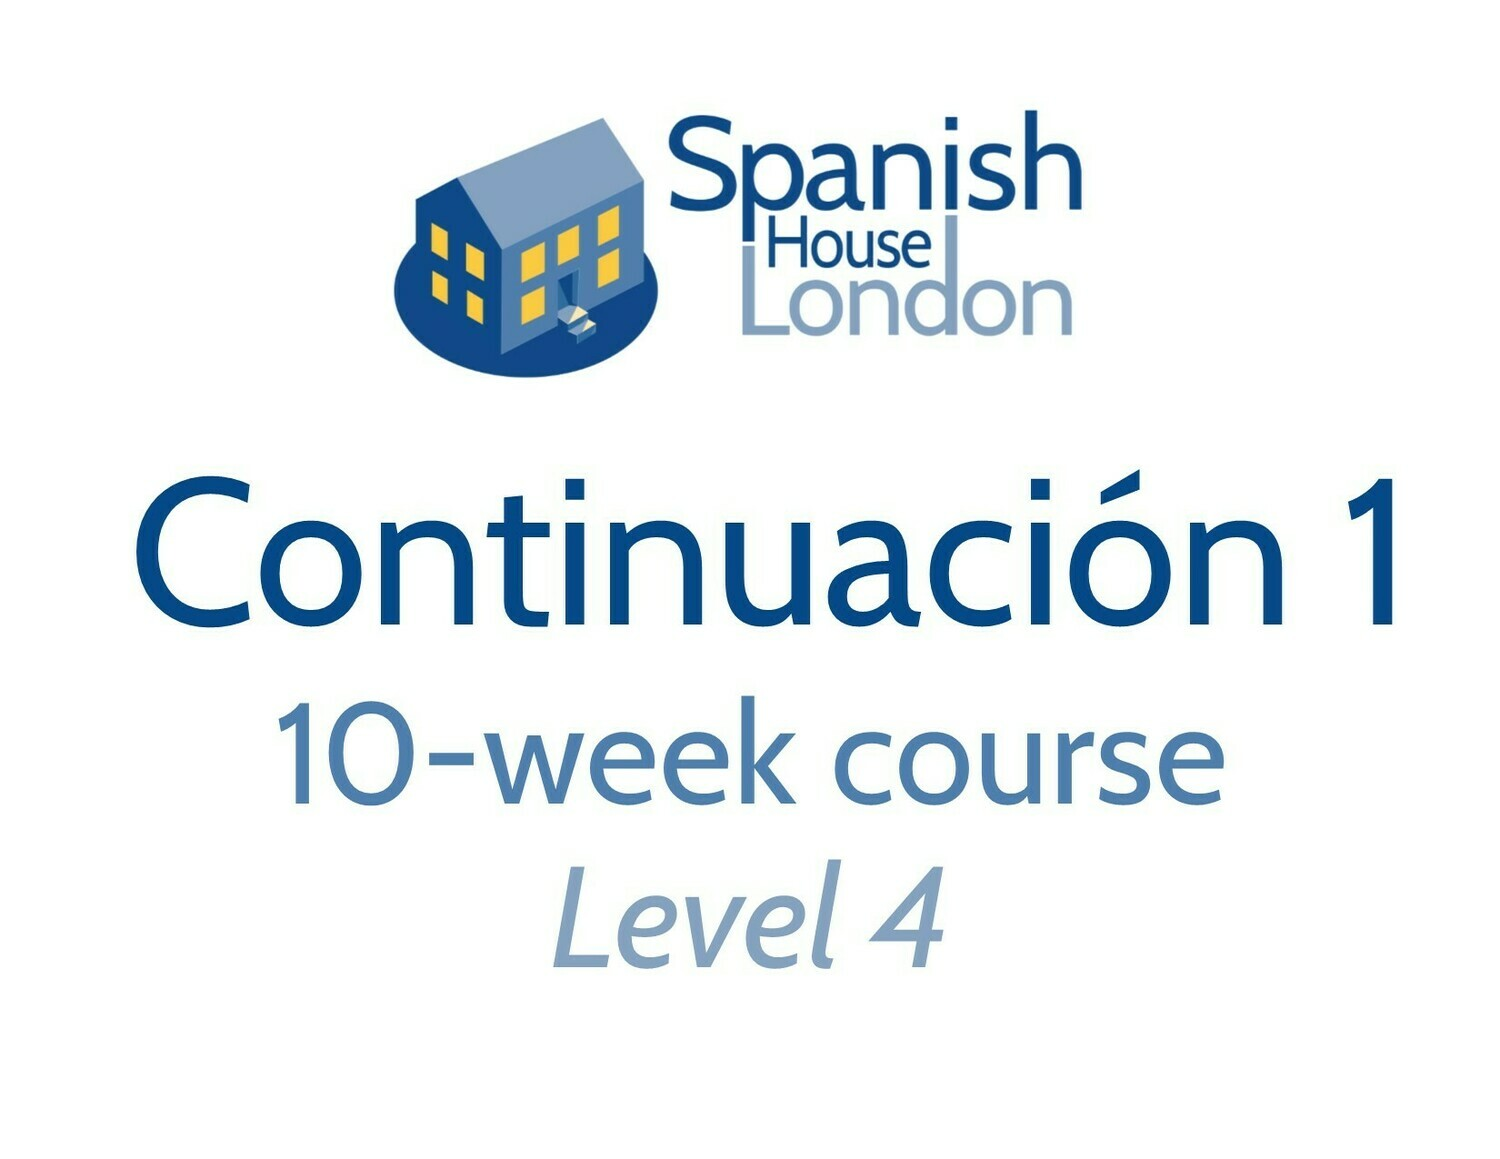 Continuacion 1 Course starting on 27th August at 7.30pm in Euston